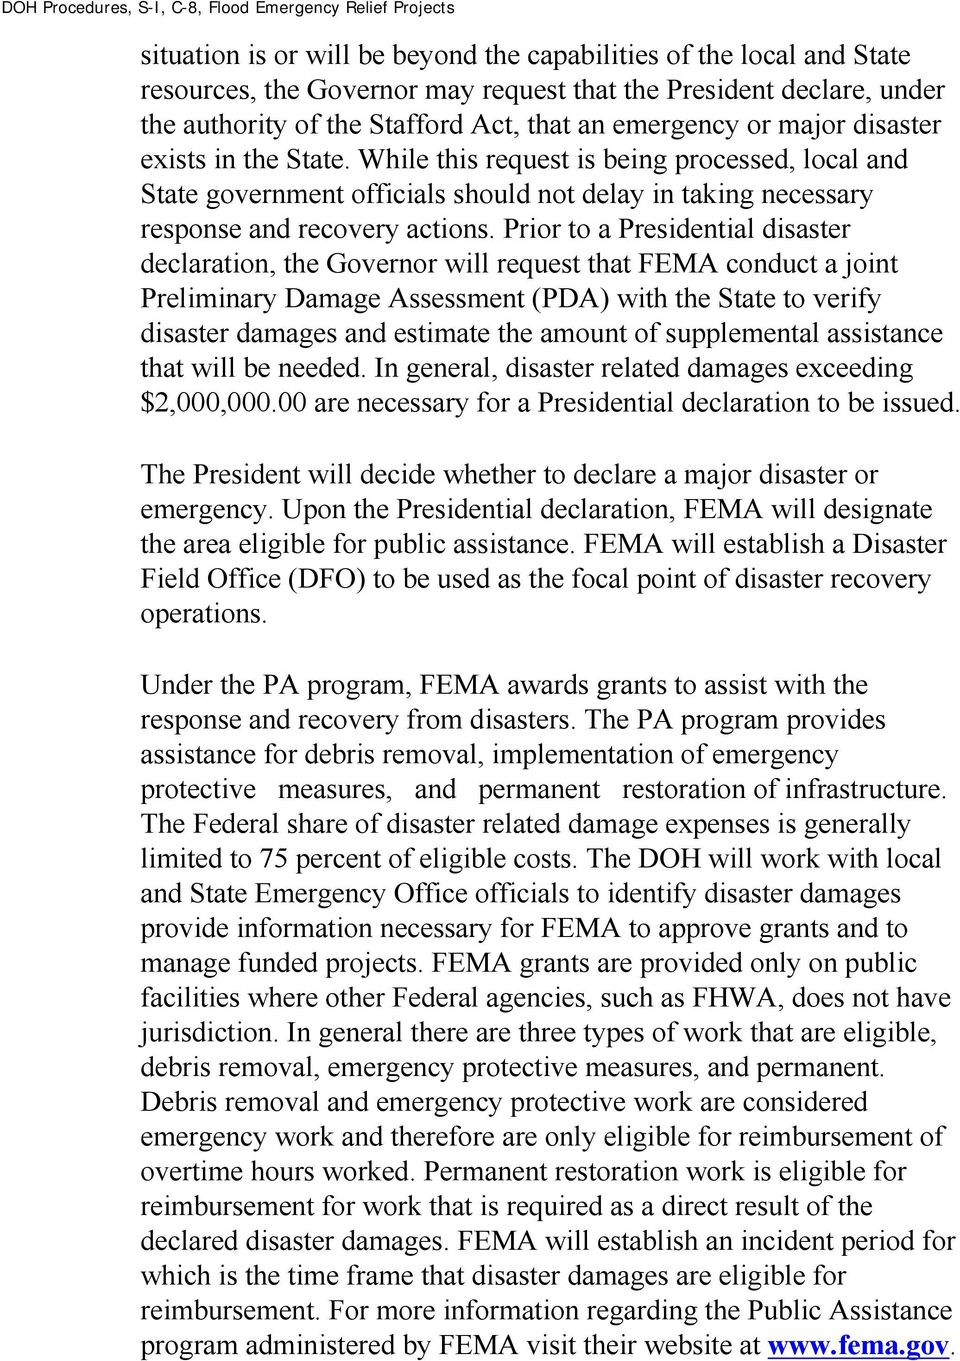 Prior to a Presidential disaster declaration, the Governor will request that FEMA conduct a joint Preliminary Damage Assessment (PDA) with the State to verify disaster damages and estimate the amount